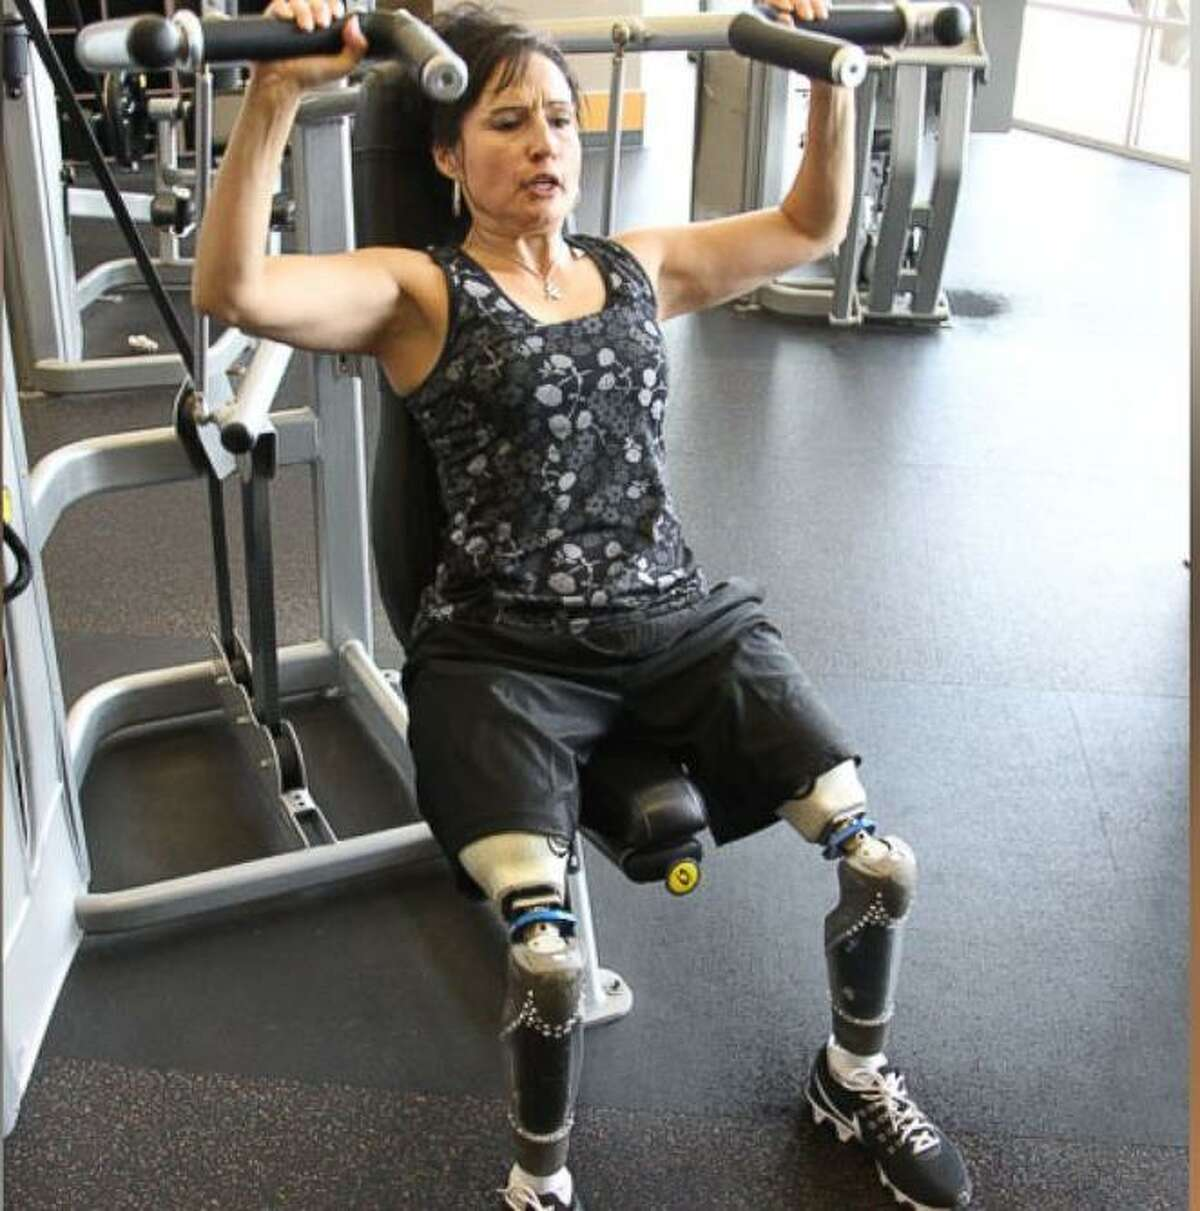 Yvonne Llanes of San Antonio, a double amputee who has an inspiring story, was celebrated in a TV feature on